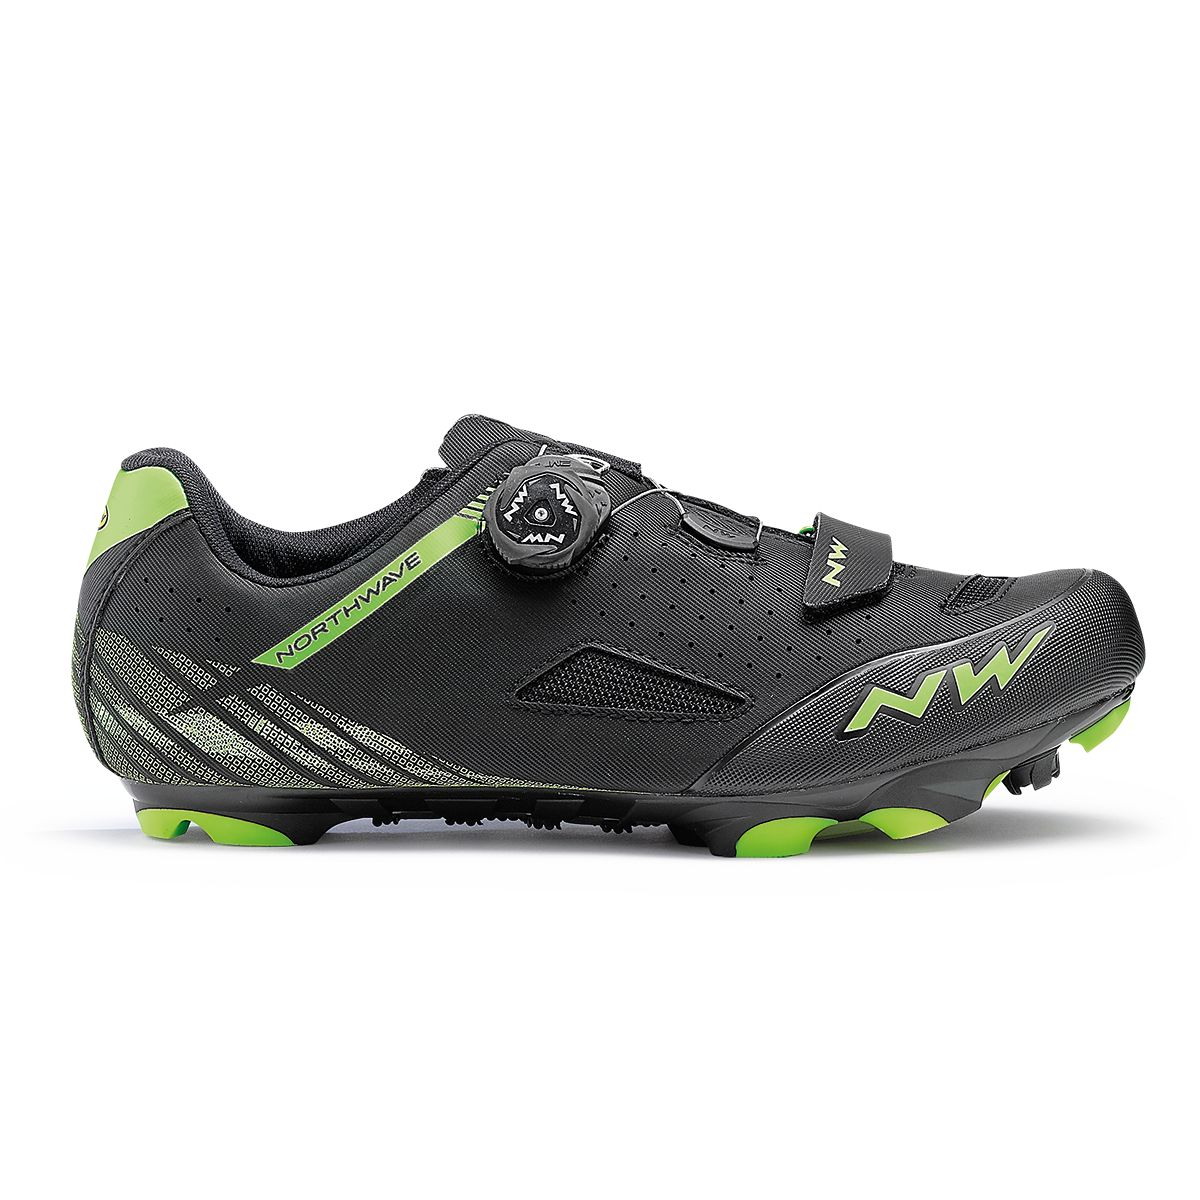 ORIGIN PLUS MTB-Schuhe